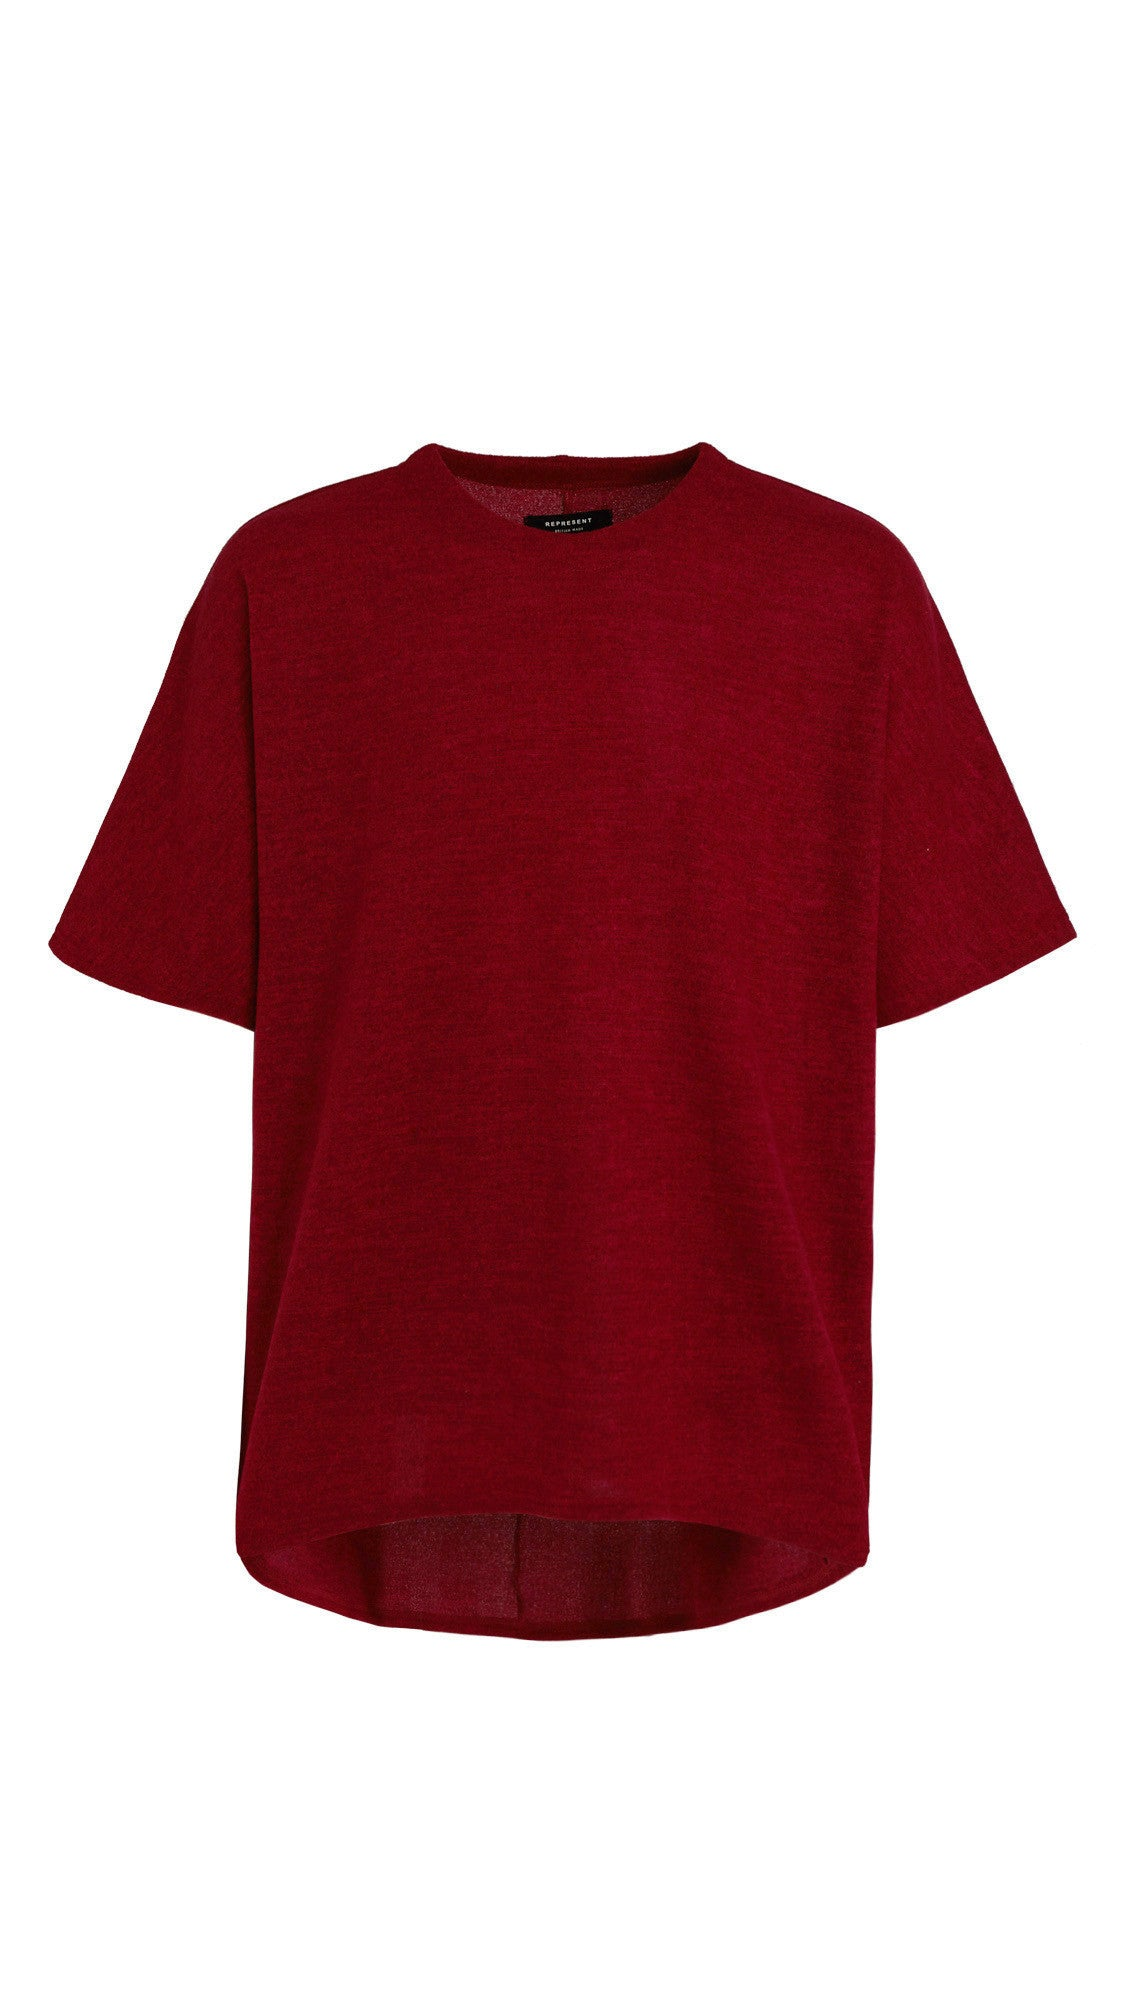 Scallop T-shirt - Ox Blood